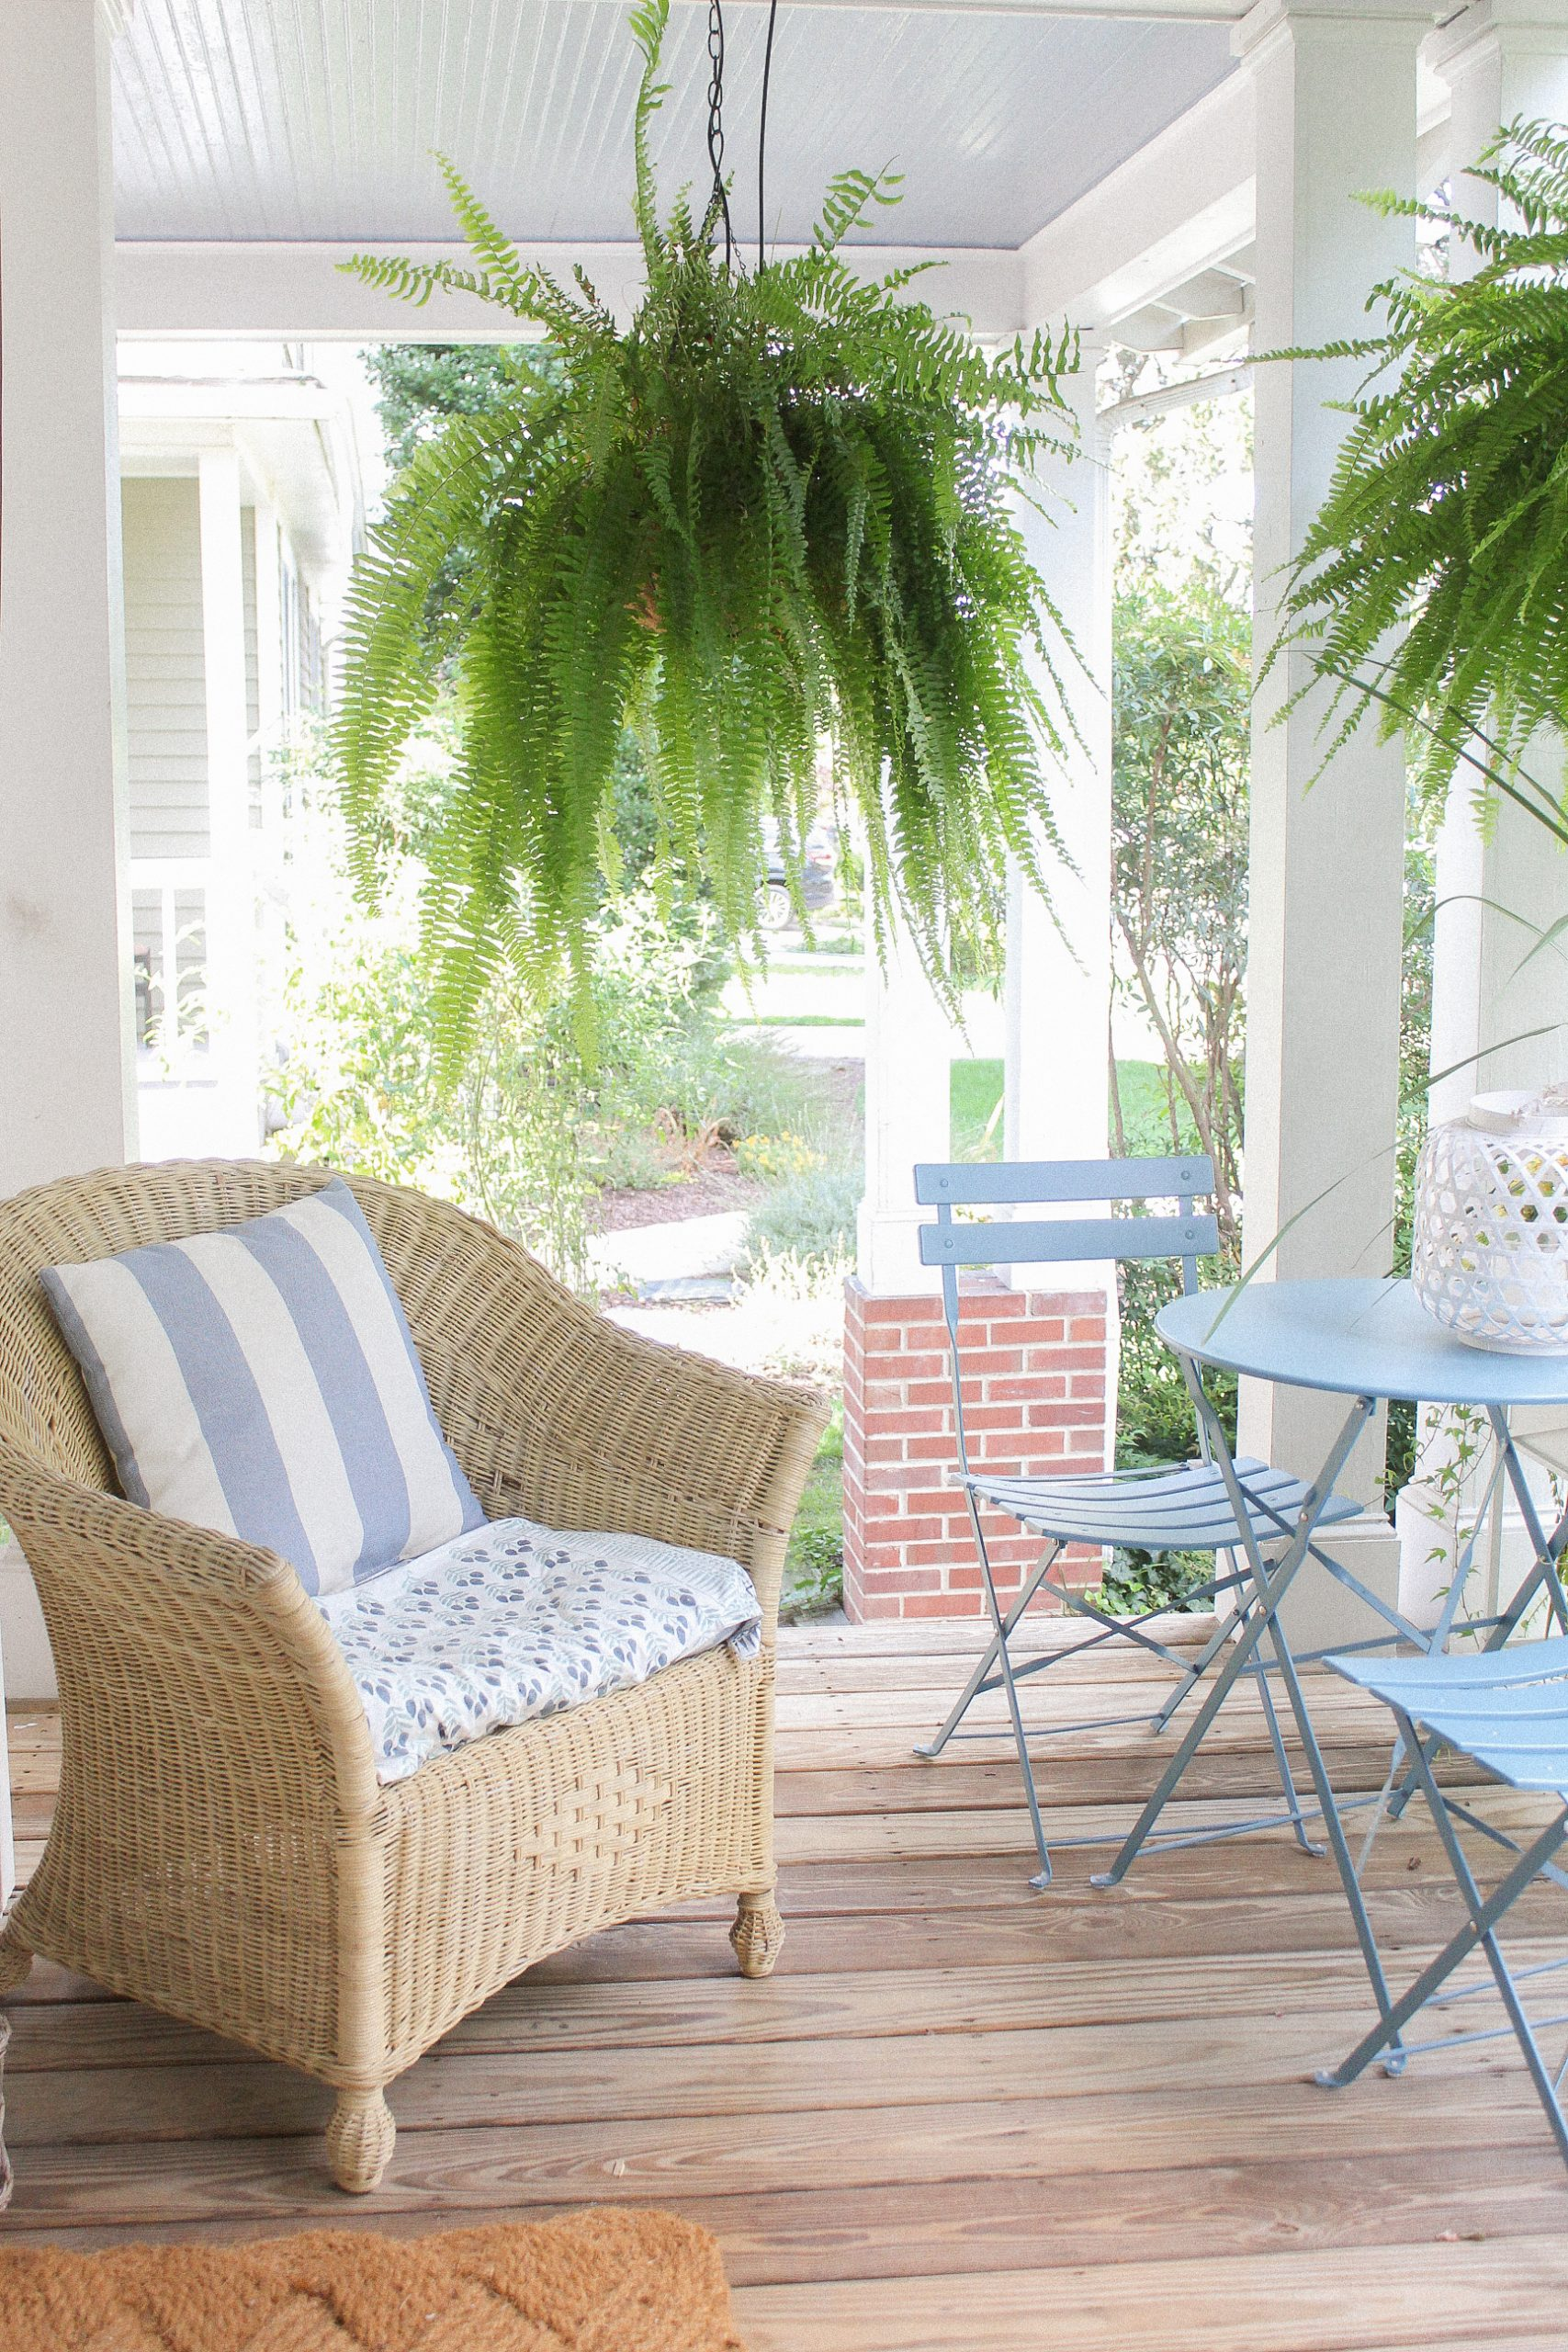 automatic watering system - amazon watering kit - potted plants - gardening tips - diy watering system - boxwoods - hanging boston ferns - flower box planning - craftsman front porch - wicker chair